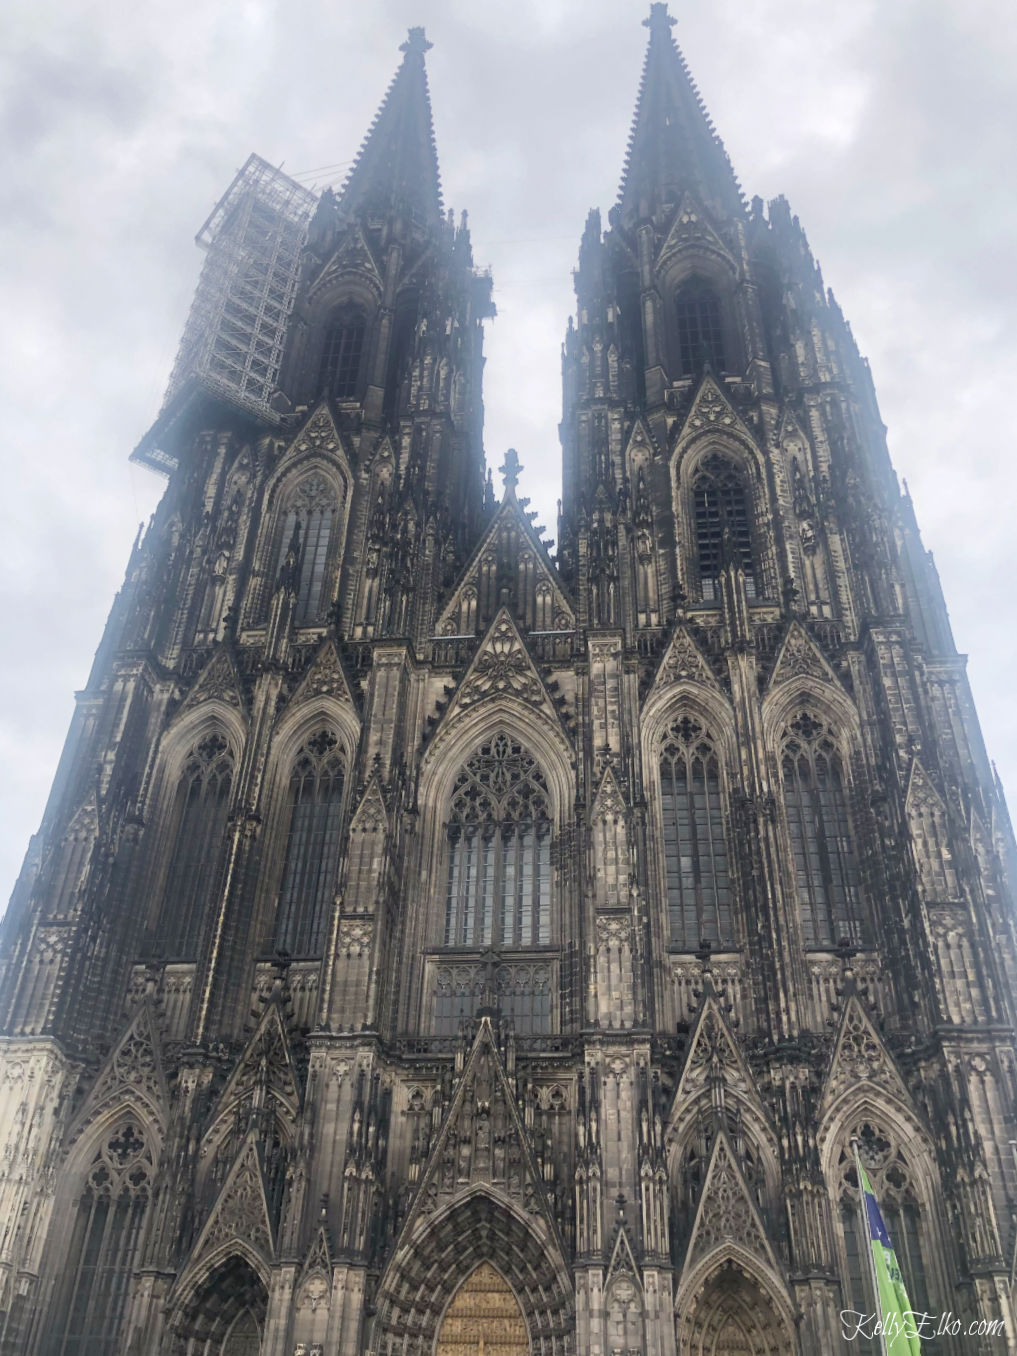 the massive Cologne Cathedral in Cologne Germany is a UNESCO World Heritage site kellyelko.com #colognegermany #colognecathedral #travel #rhineriver #travelblogger #europevacation